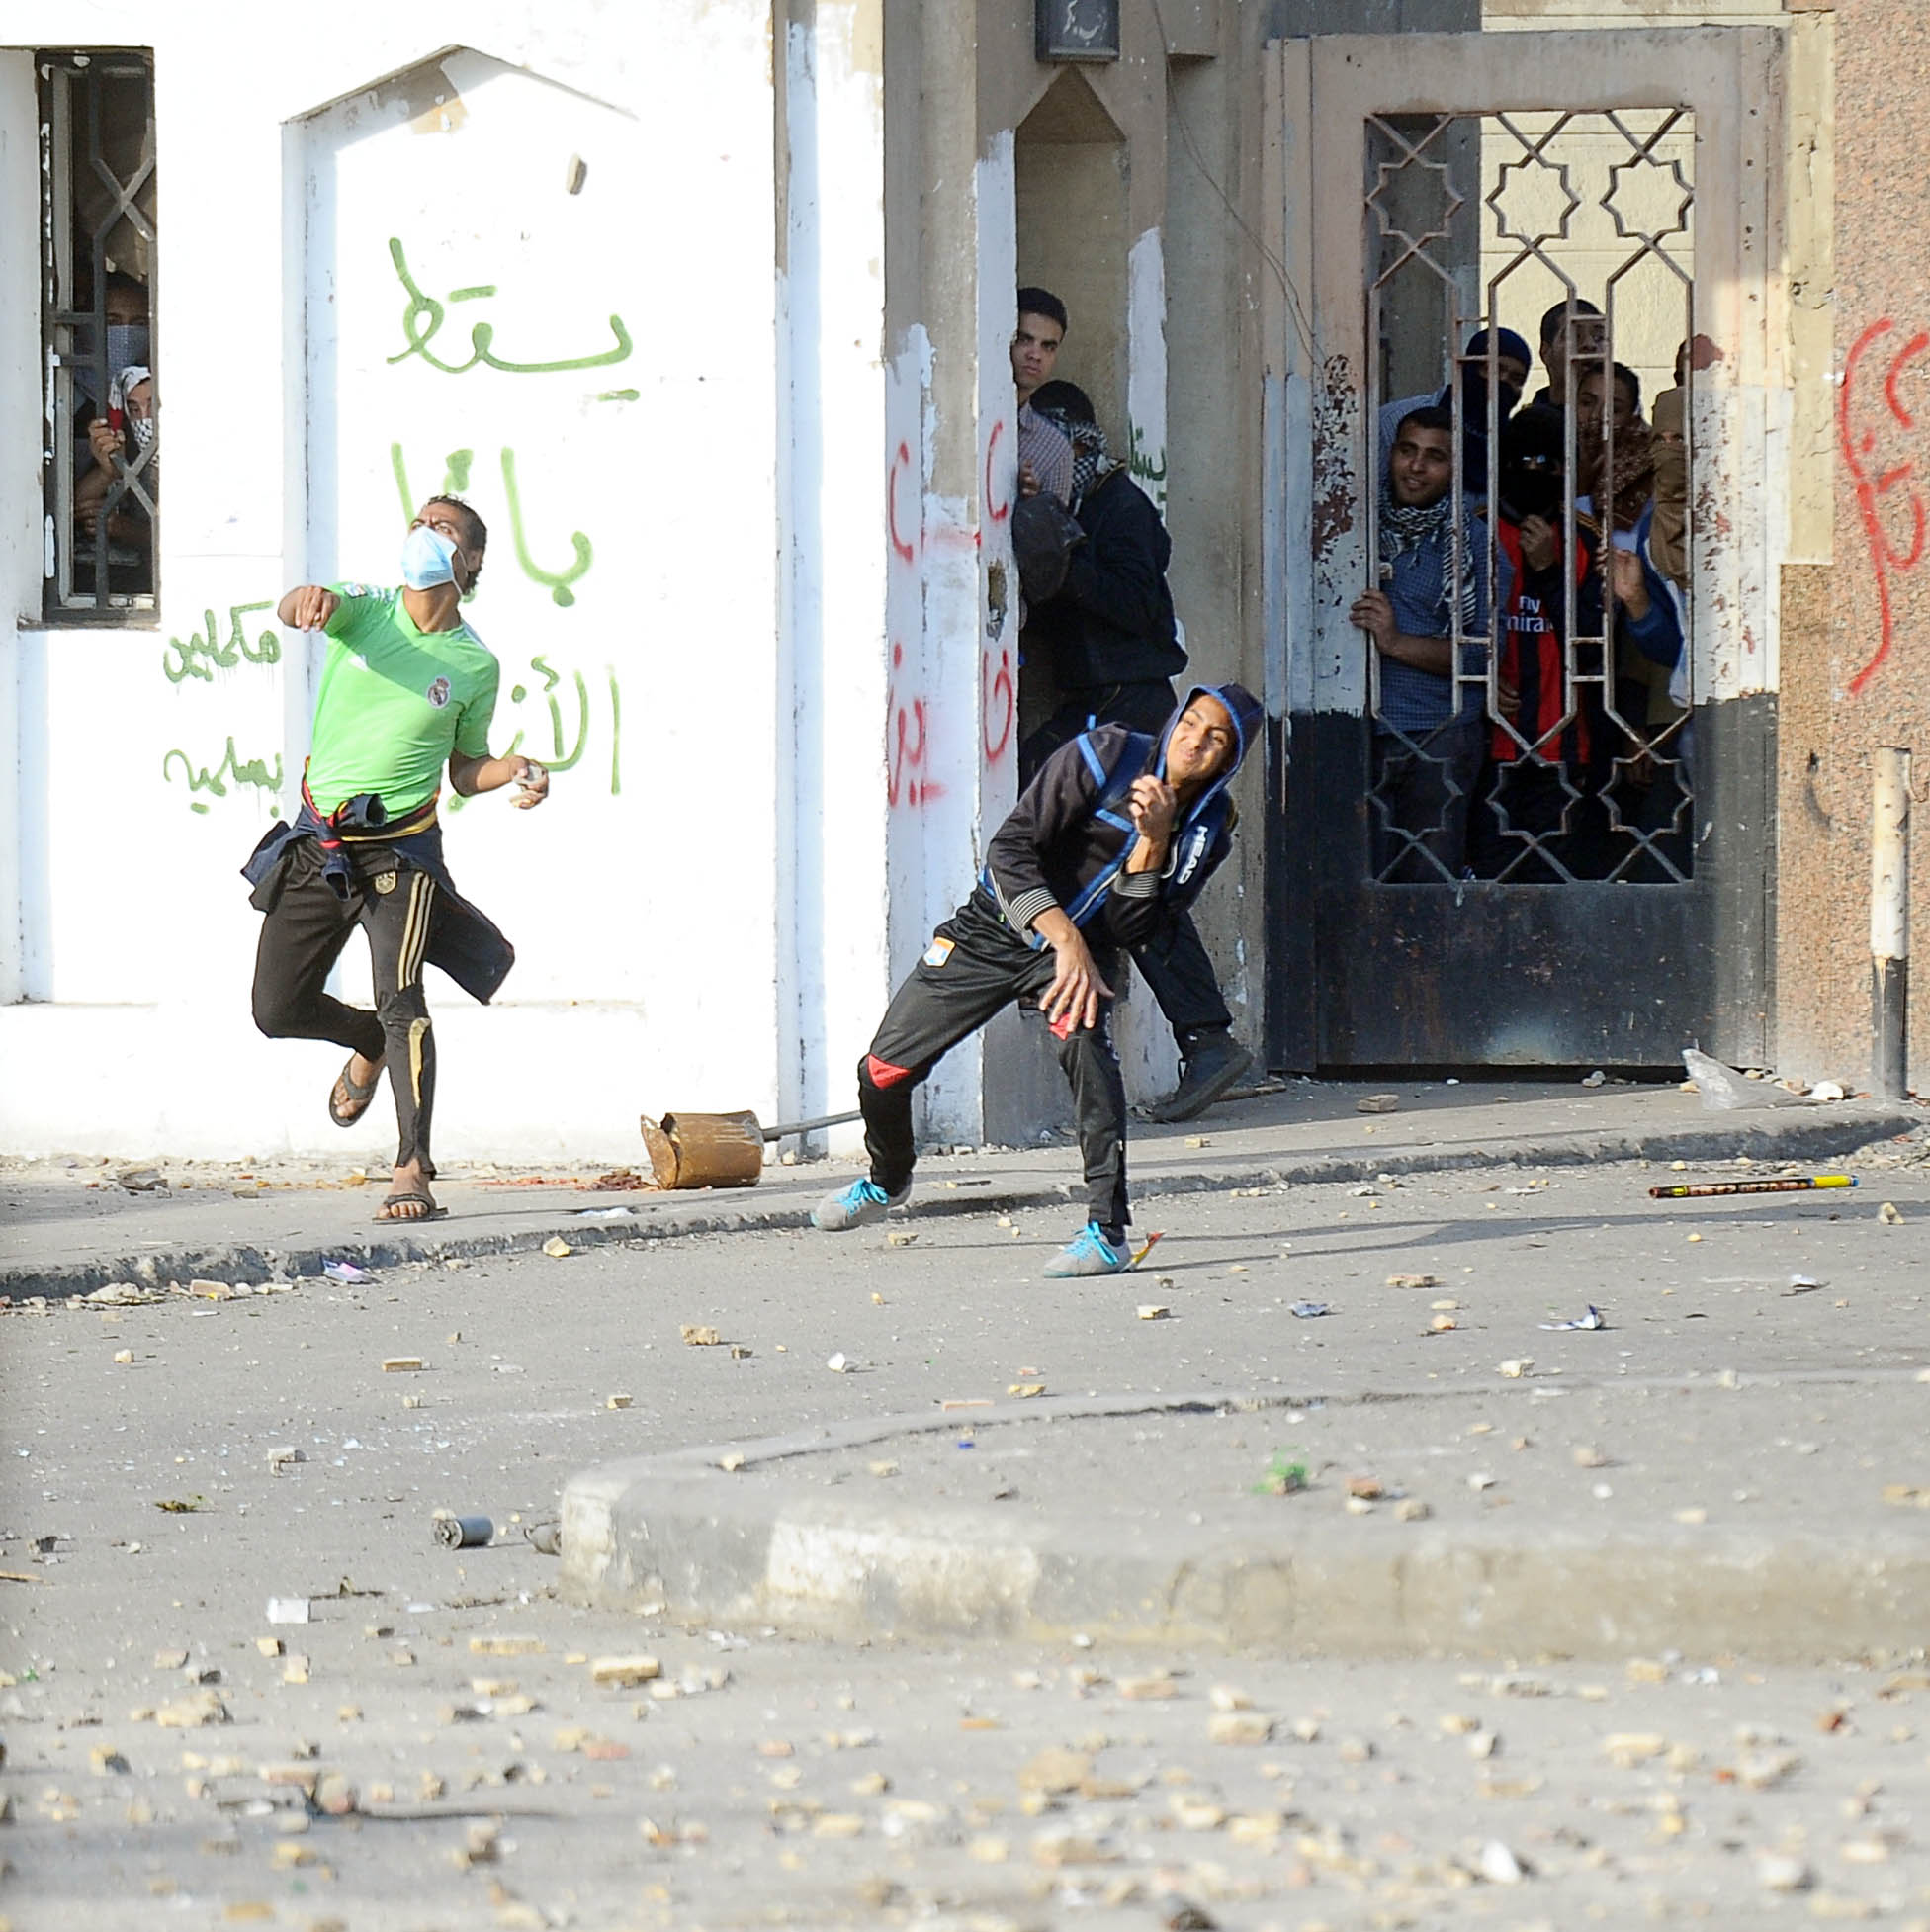 Clashes erupted by Al-Azhar University on Friday between protesters and security forces Ahmed Al-Malky